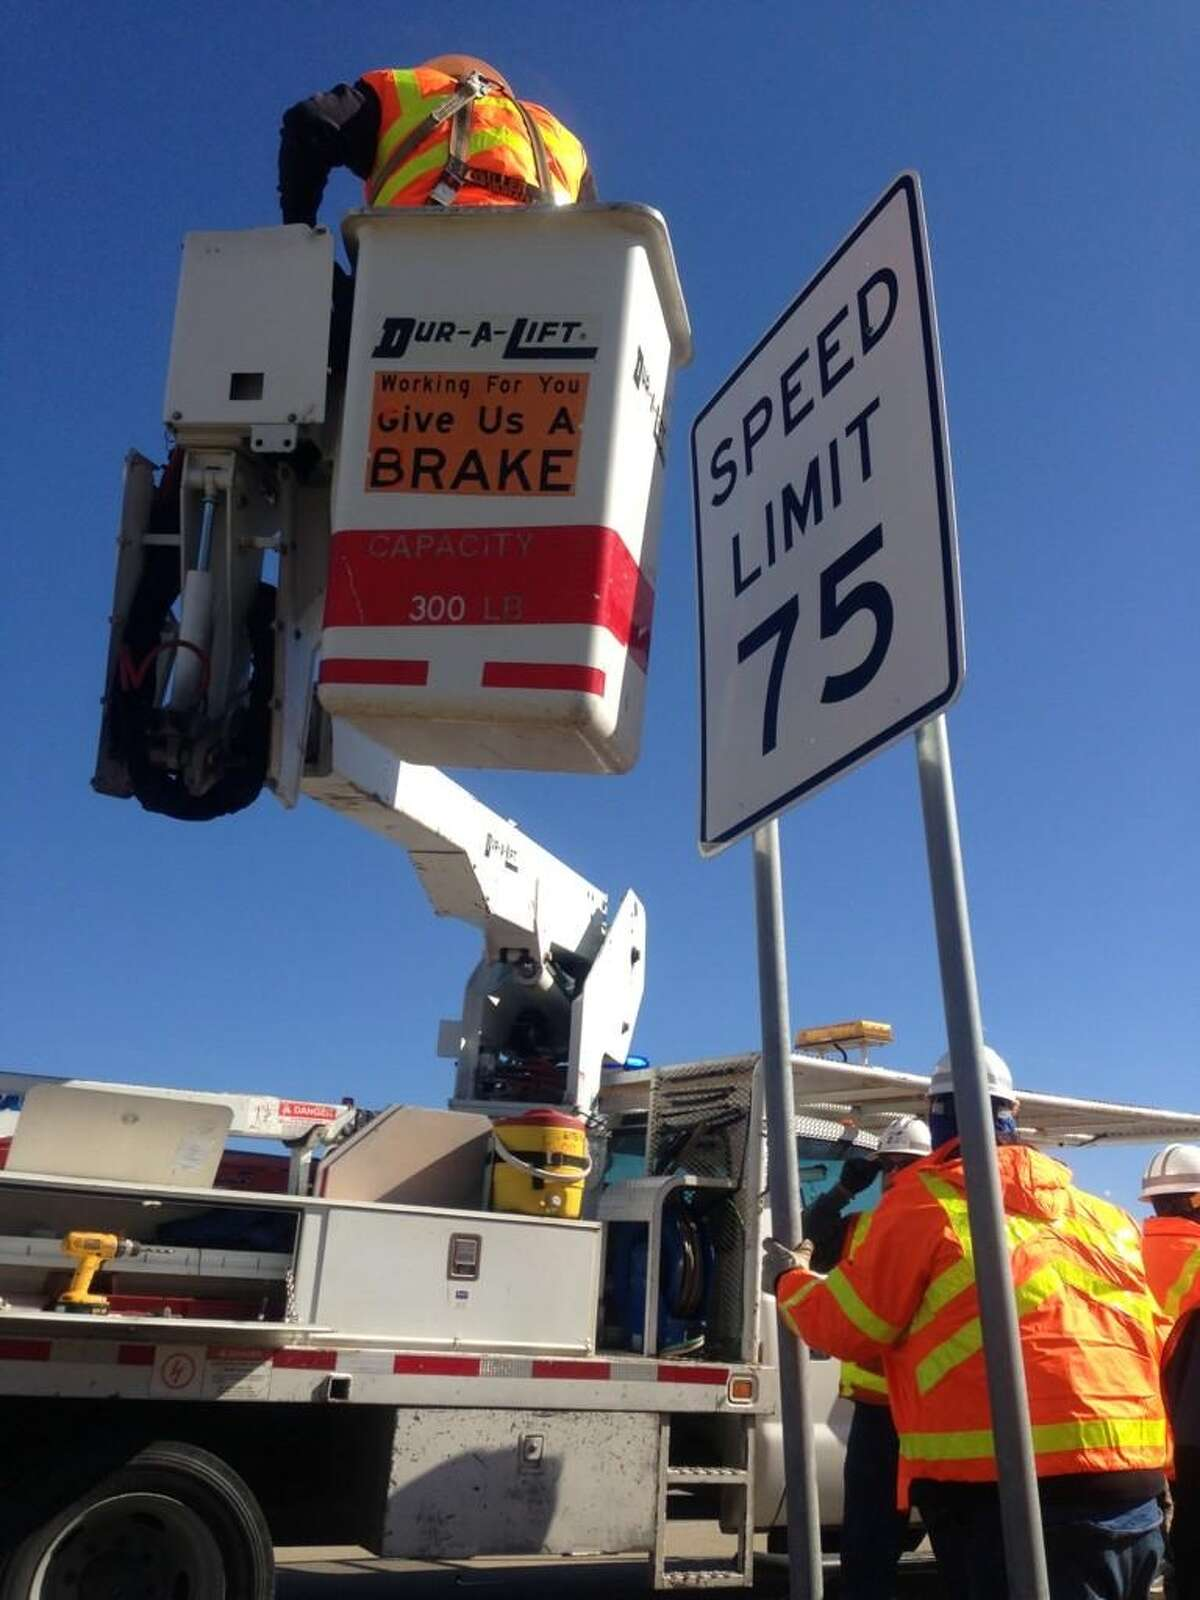 The Texas Department of Transportation is installing new 75 mph speed limit signs along Texas 6 in Bryan-College Station.